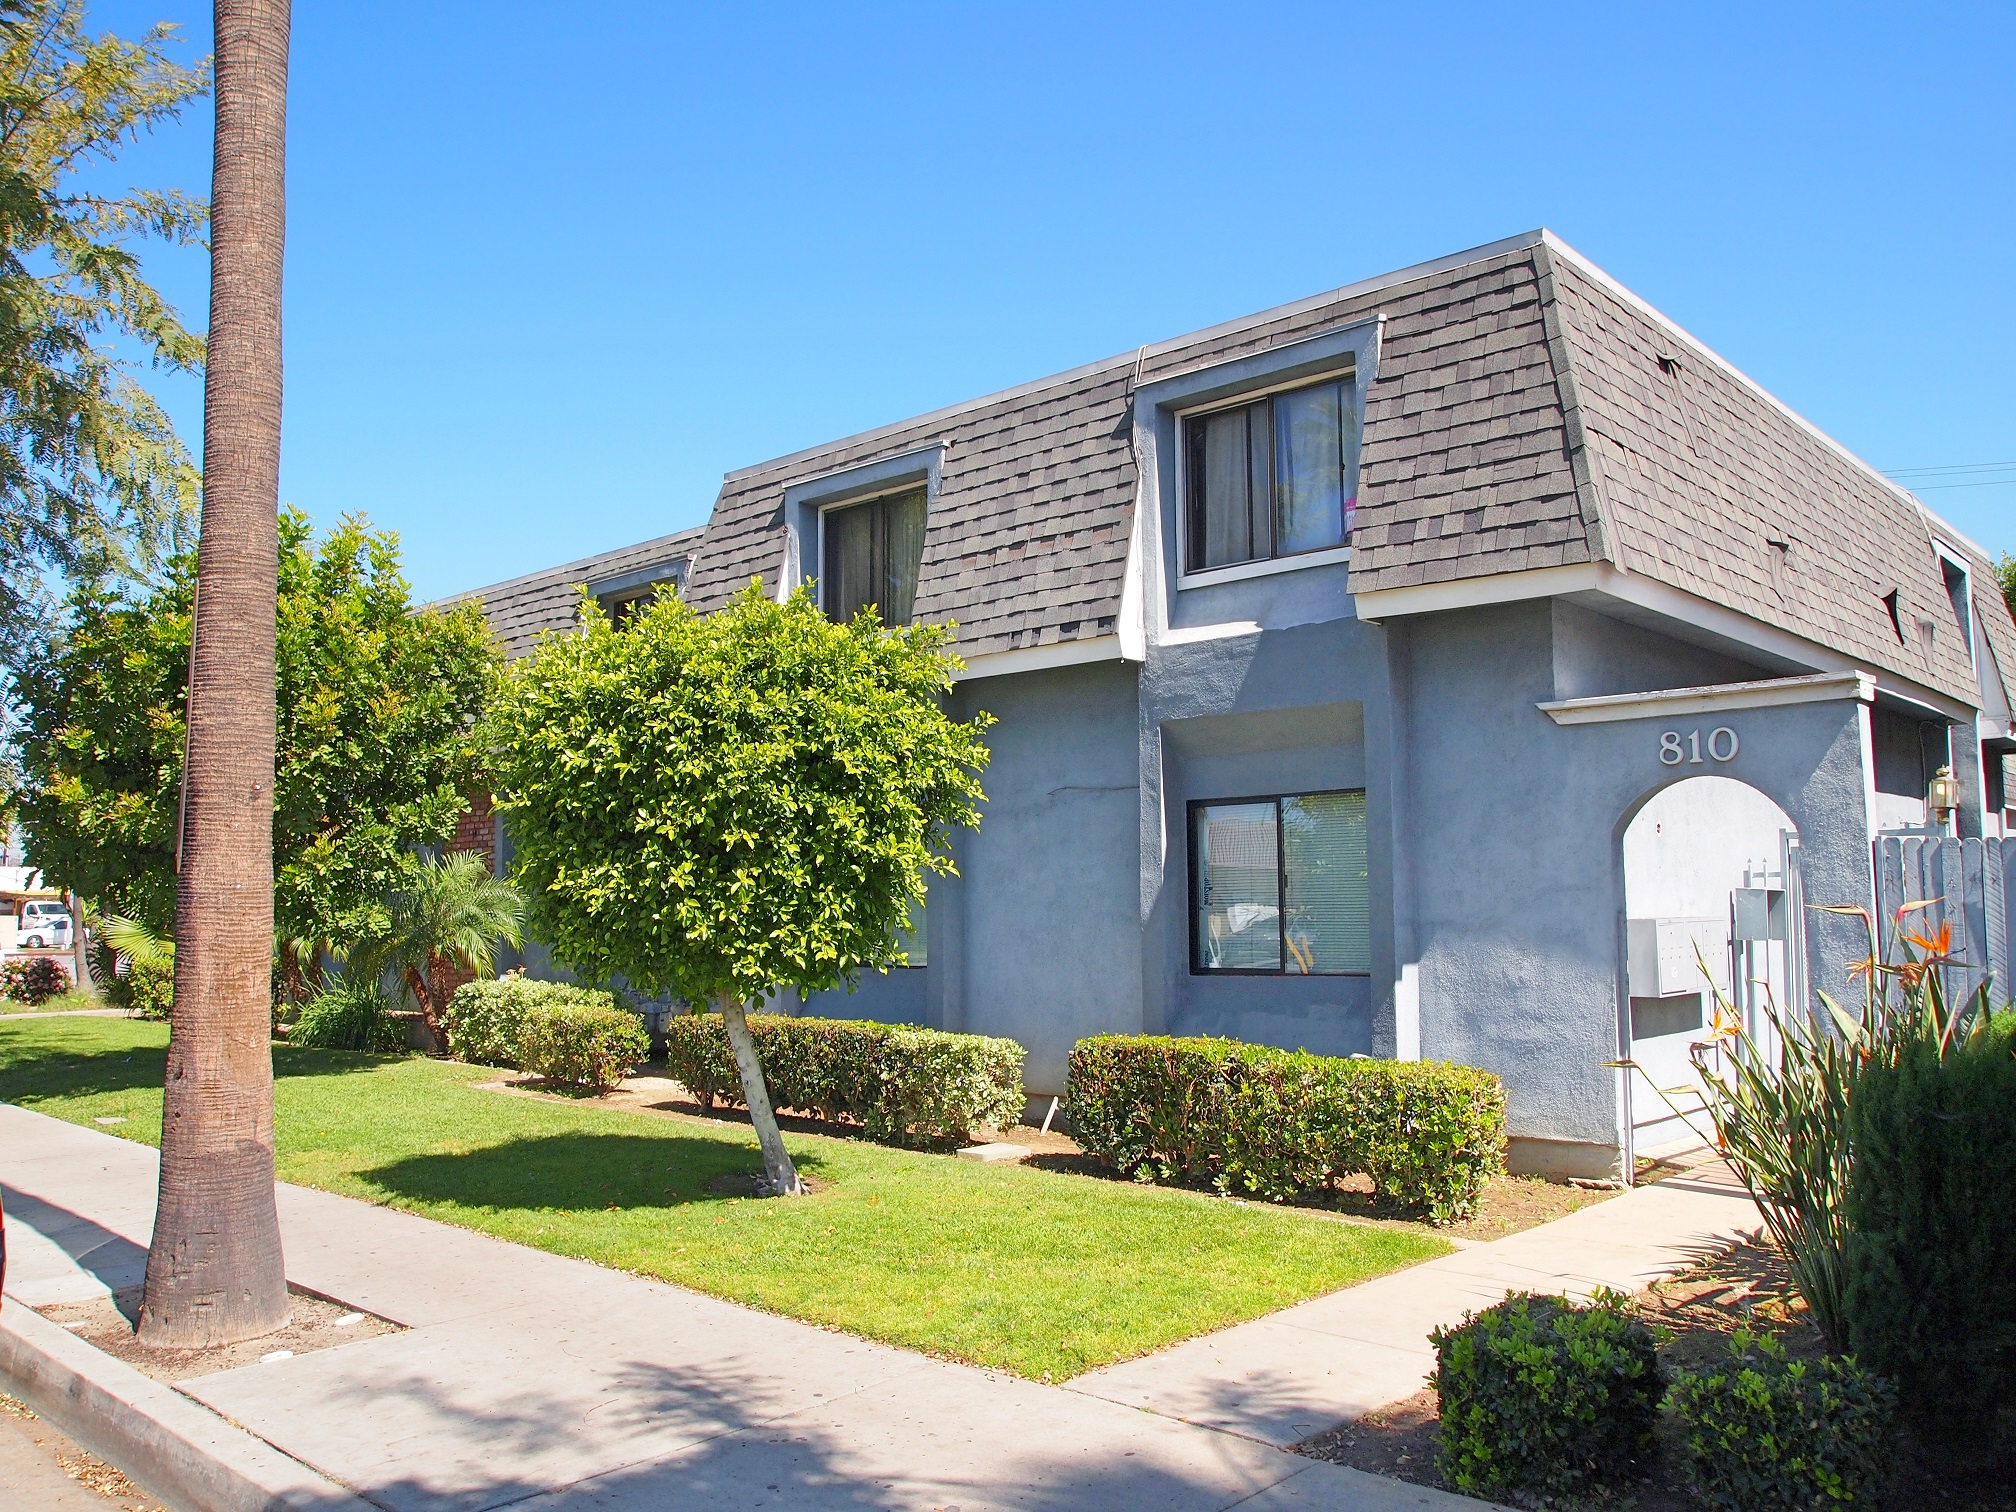 8 Unit Multifamily Income Property